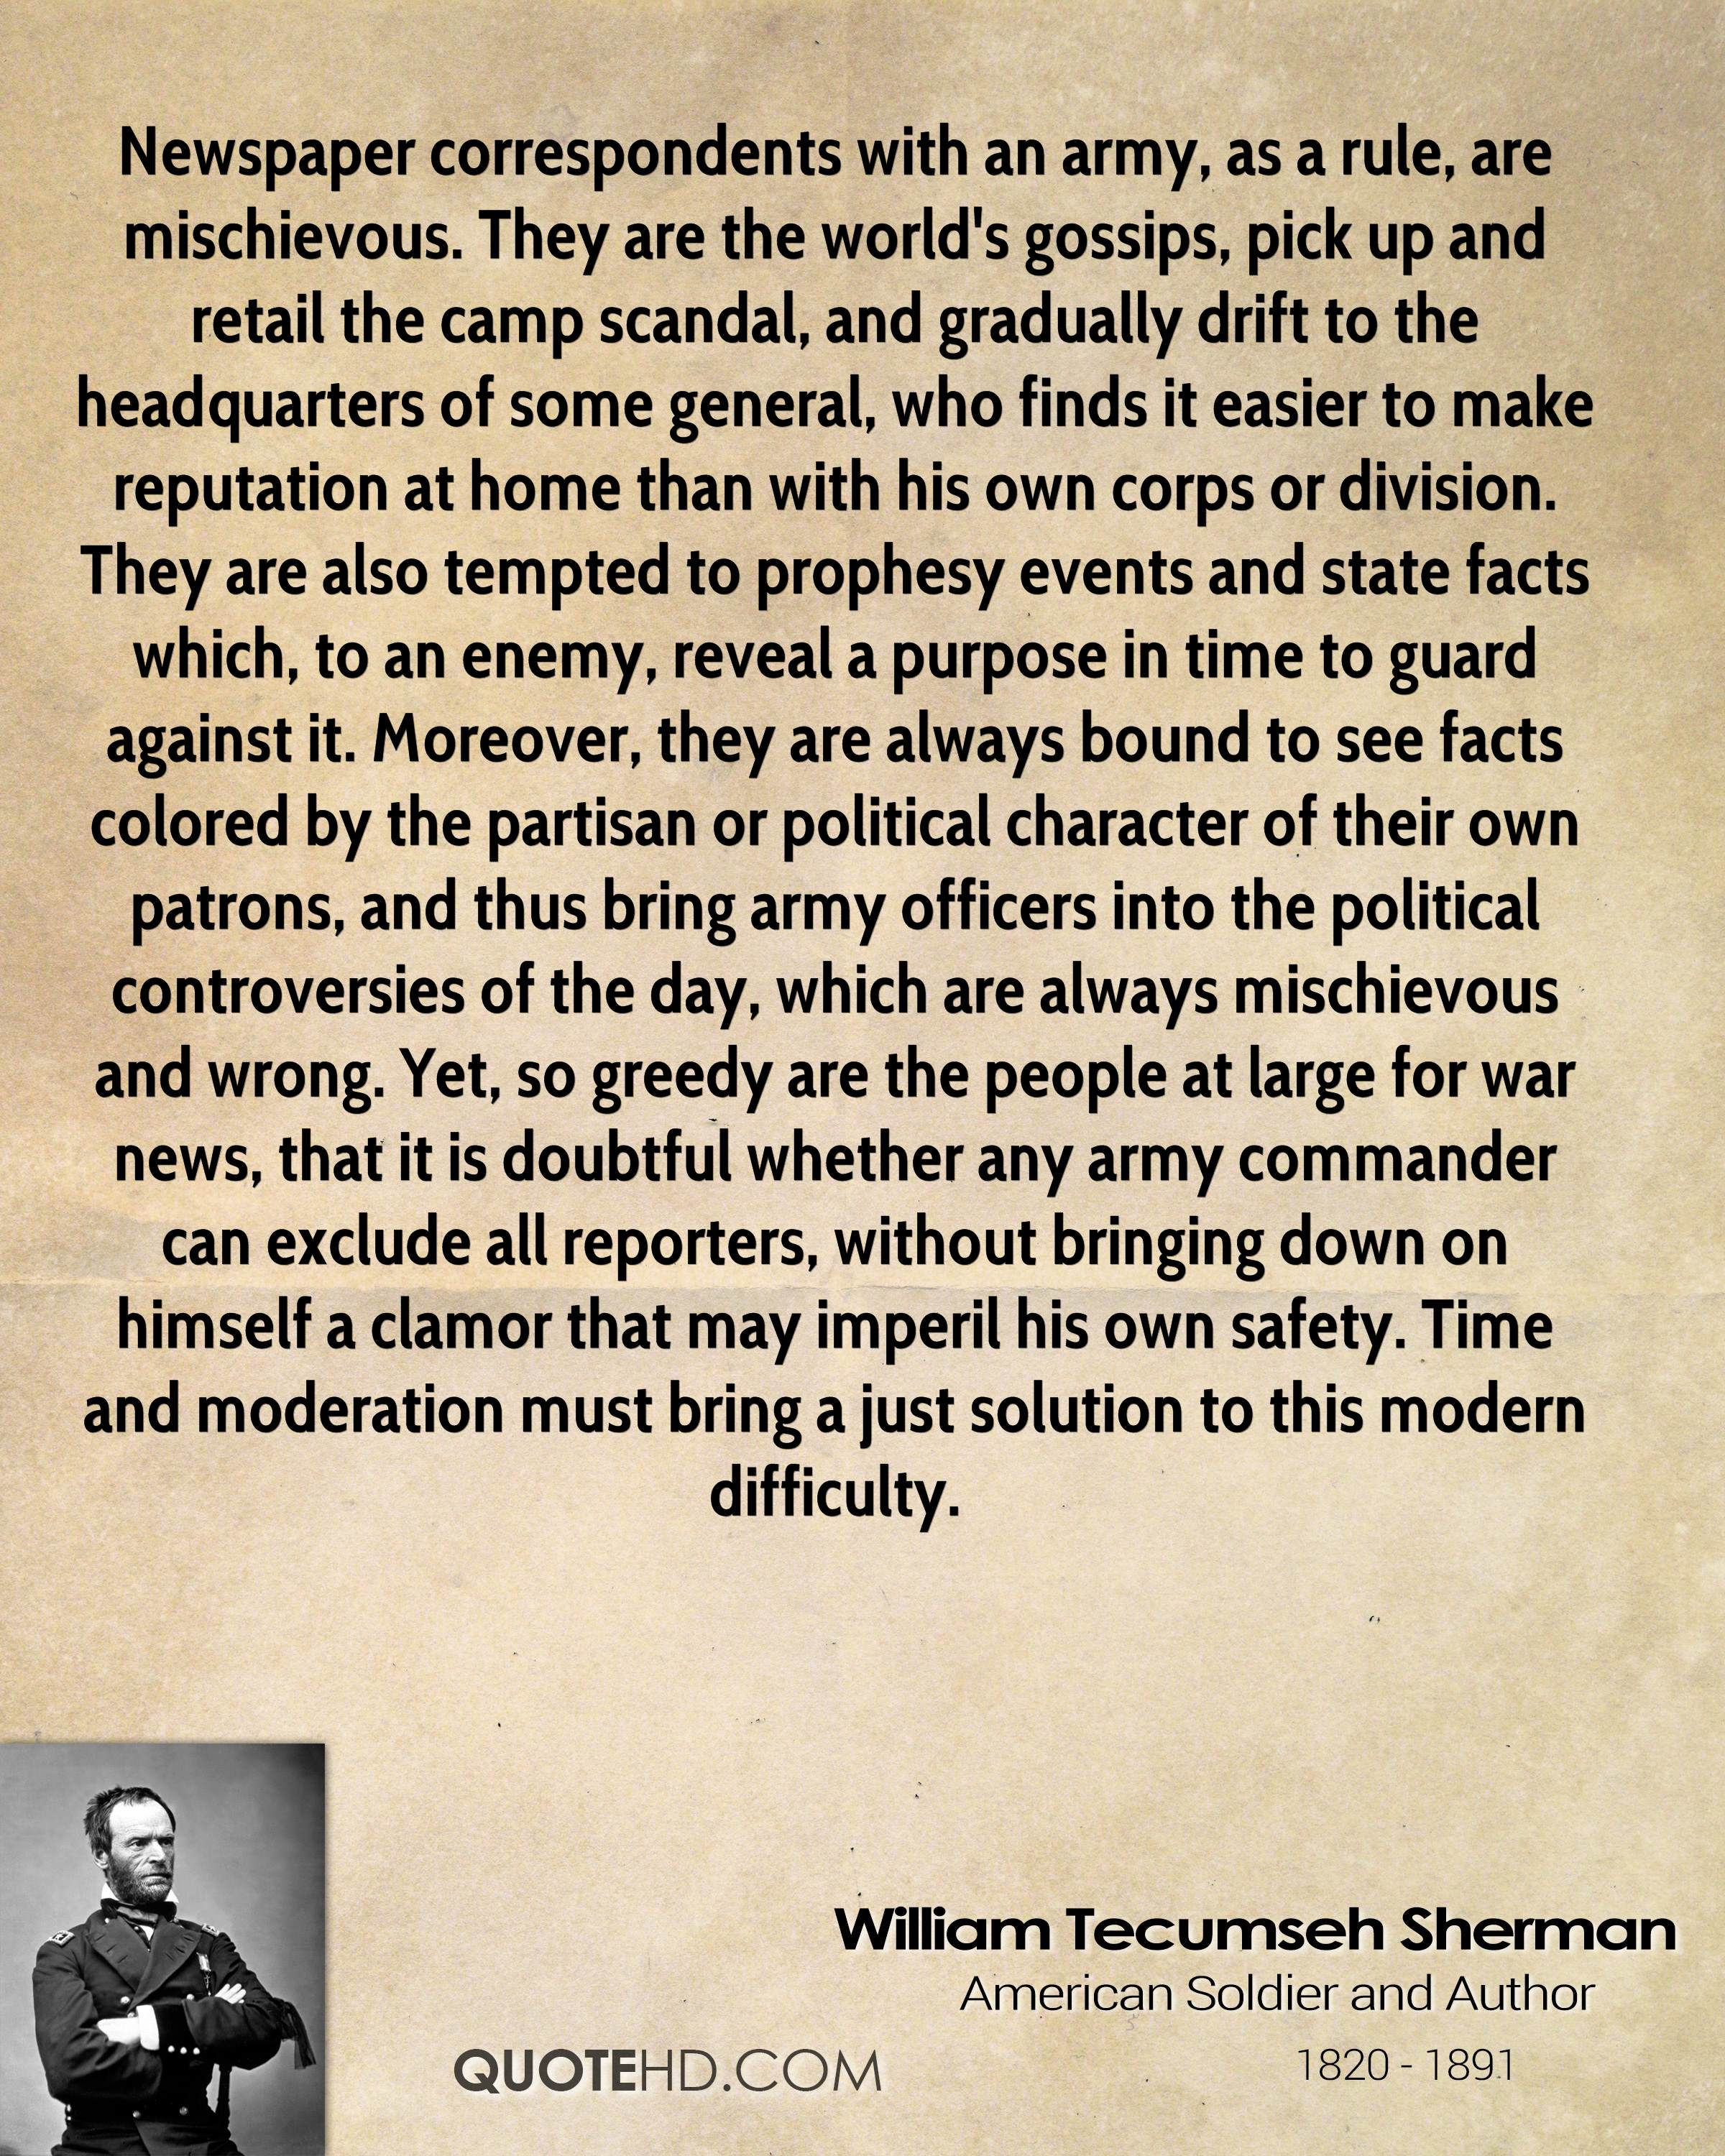 Newspaper correspondents with an army, as a rule, are mischievous. They are the world's gossips, pick up and retail the camp scandal, and gradually drift to the headquarters of some general, who finds it easier to make reputation at home than with his own corps or division. They are also tempted to prophesy events and state facts which, to an enemy, reveal a purpose in time to guard against it. Moreover, they are always bound to see facts colored by the partisan or political character of their own patrons, and thus bring army officers into the political controversies of the day, which are always mischievous and wrong. Yet, so greedy are the people at large for war news, that it is doubtful whether any army commander can exclude all reporters, without bringing down on himself a clamor that may imperil his own safety. Time and moderation must bring a just solution to this modern difficulty.